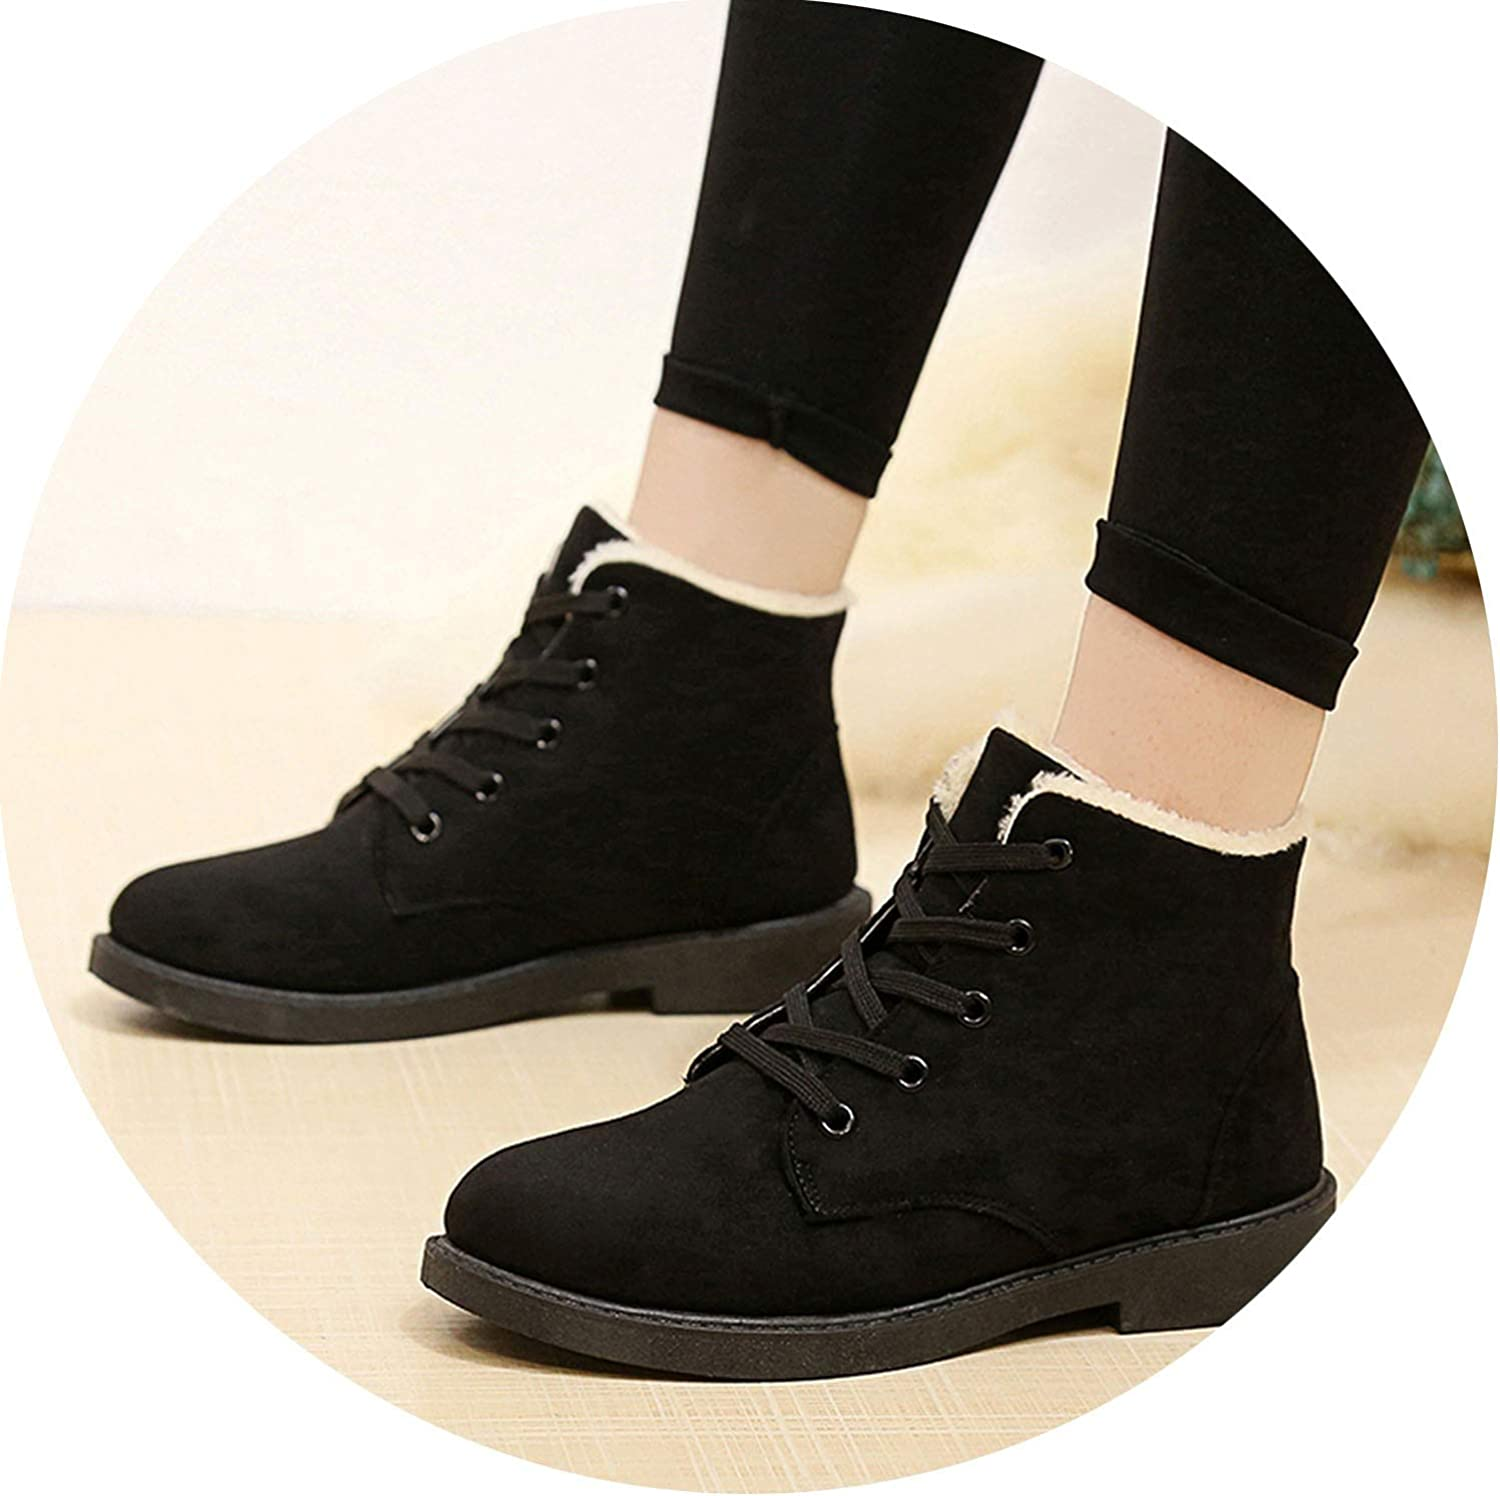 Snow Walking Boots Fur Barefoot shoes Wearable Sneakers Hightop Outdoor shoes Black